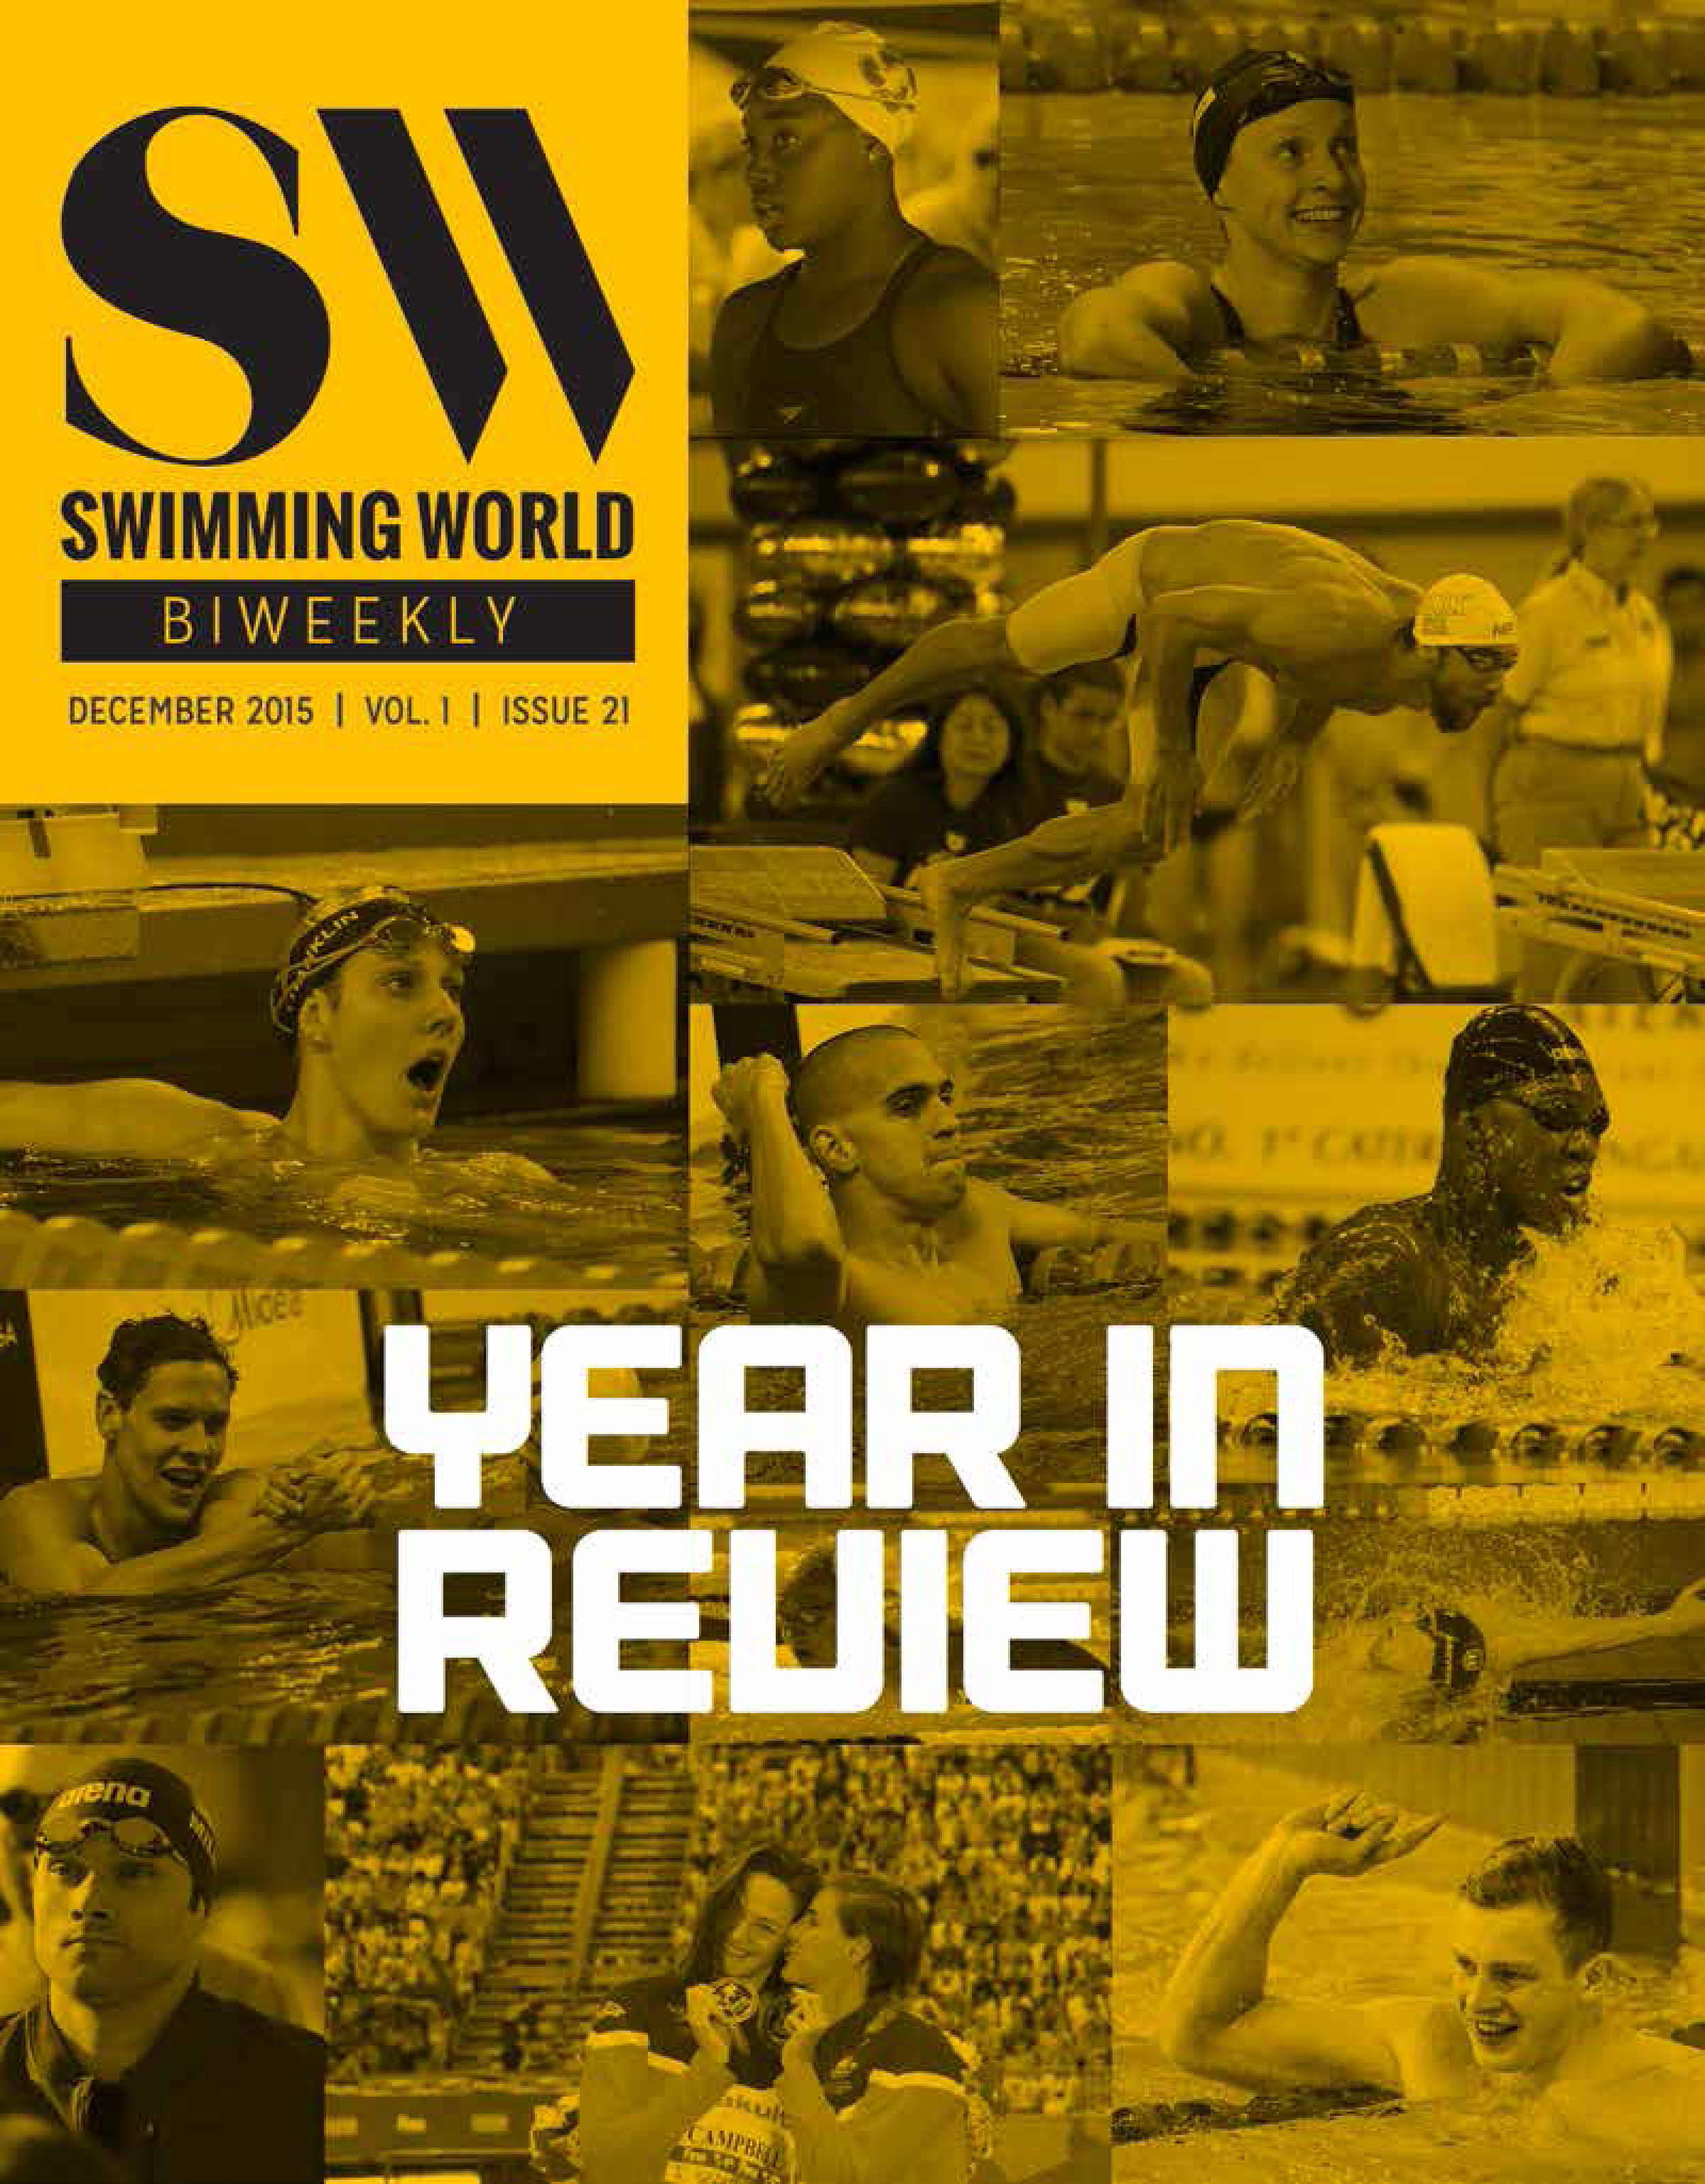 swimming world biweekly 2015 swimming year in review. Black Bedroom Furniture Sets. Home Design Ideas